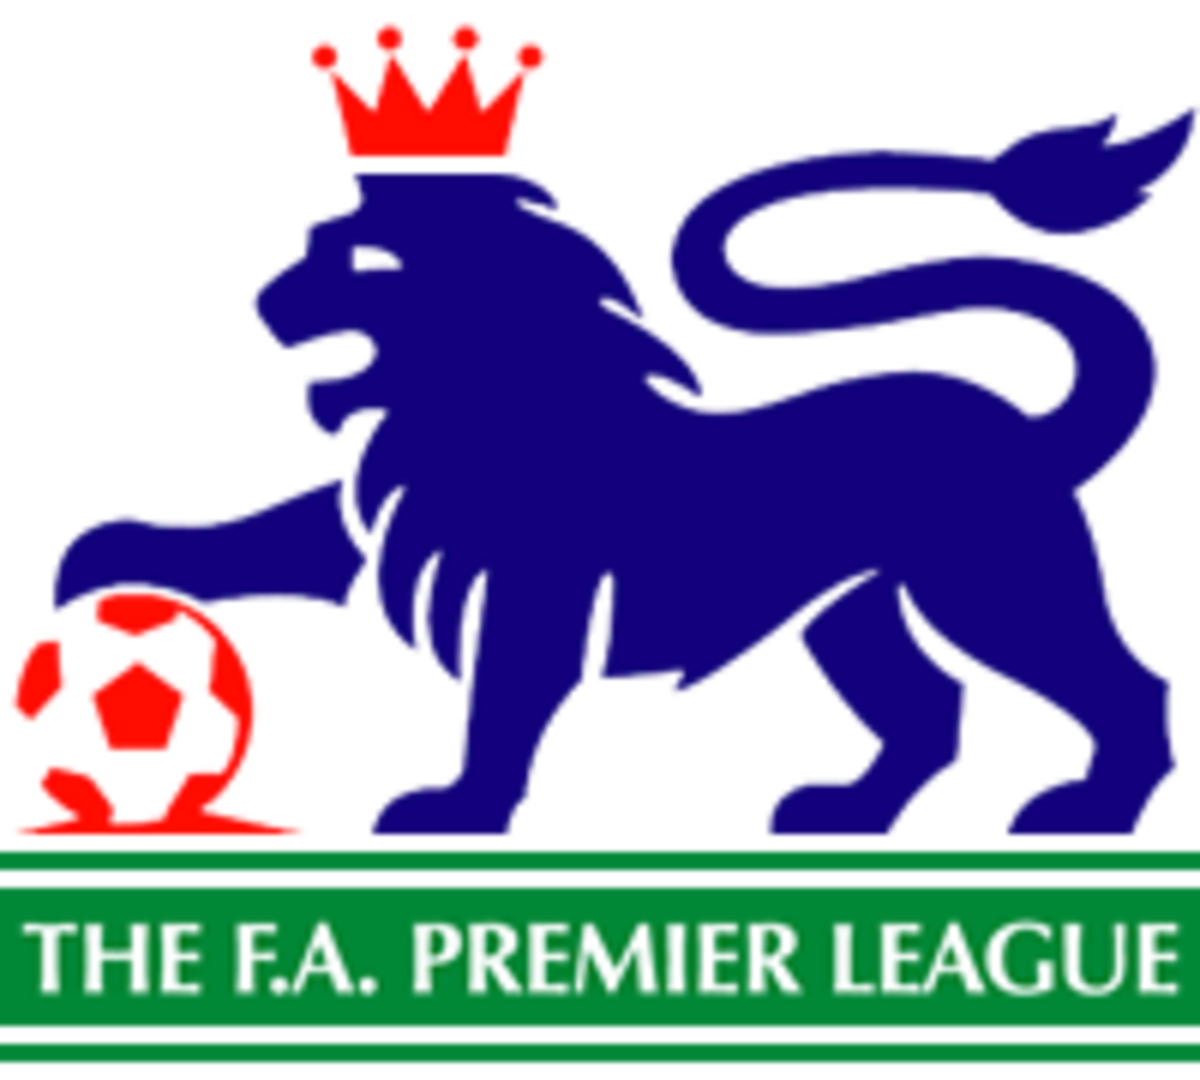 English Premier League: 1992/93